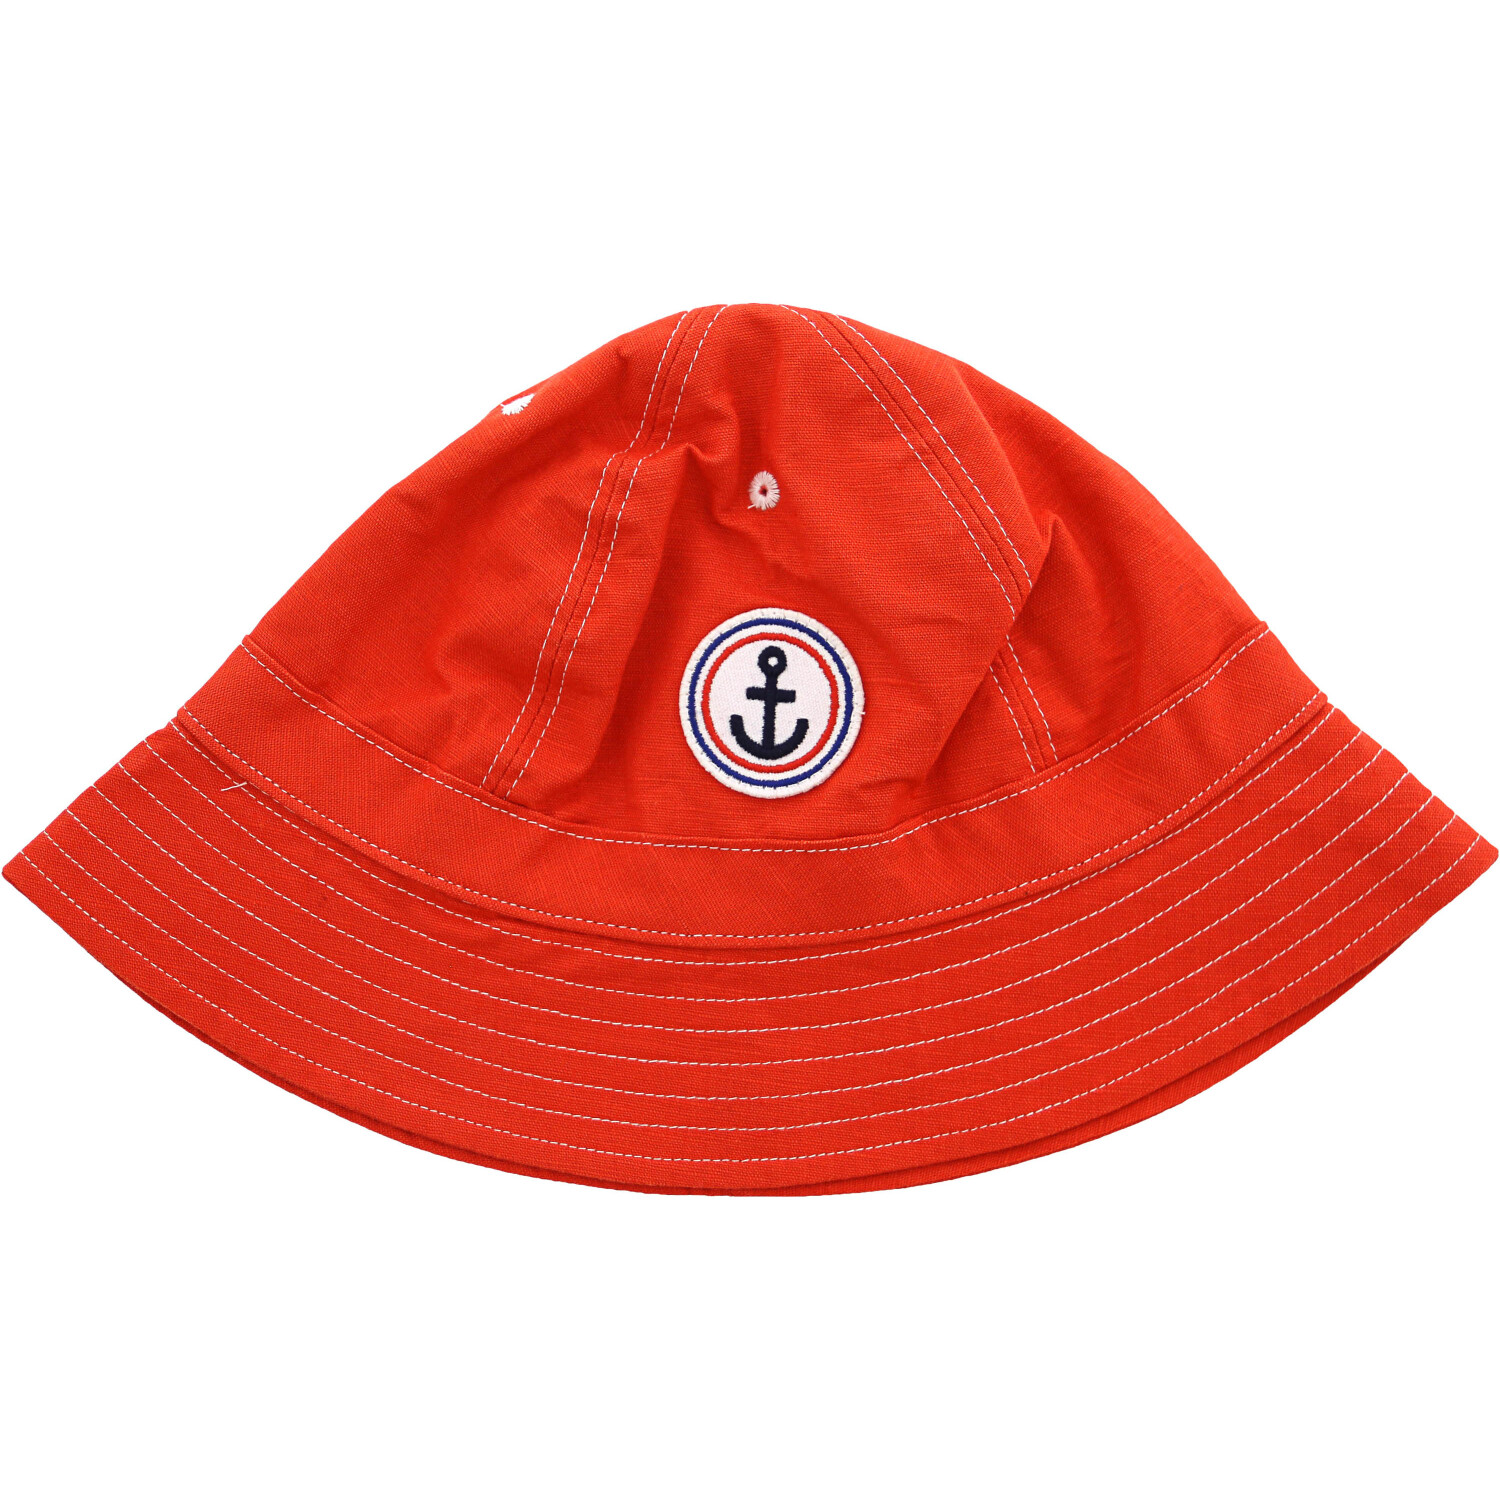 Janie And Jack Boy's Tomato Anchor Bucket Hat Hats & Cap - 6-8